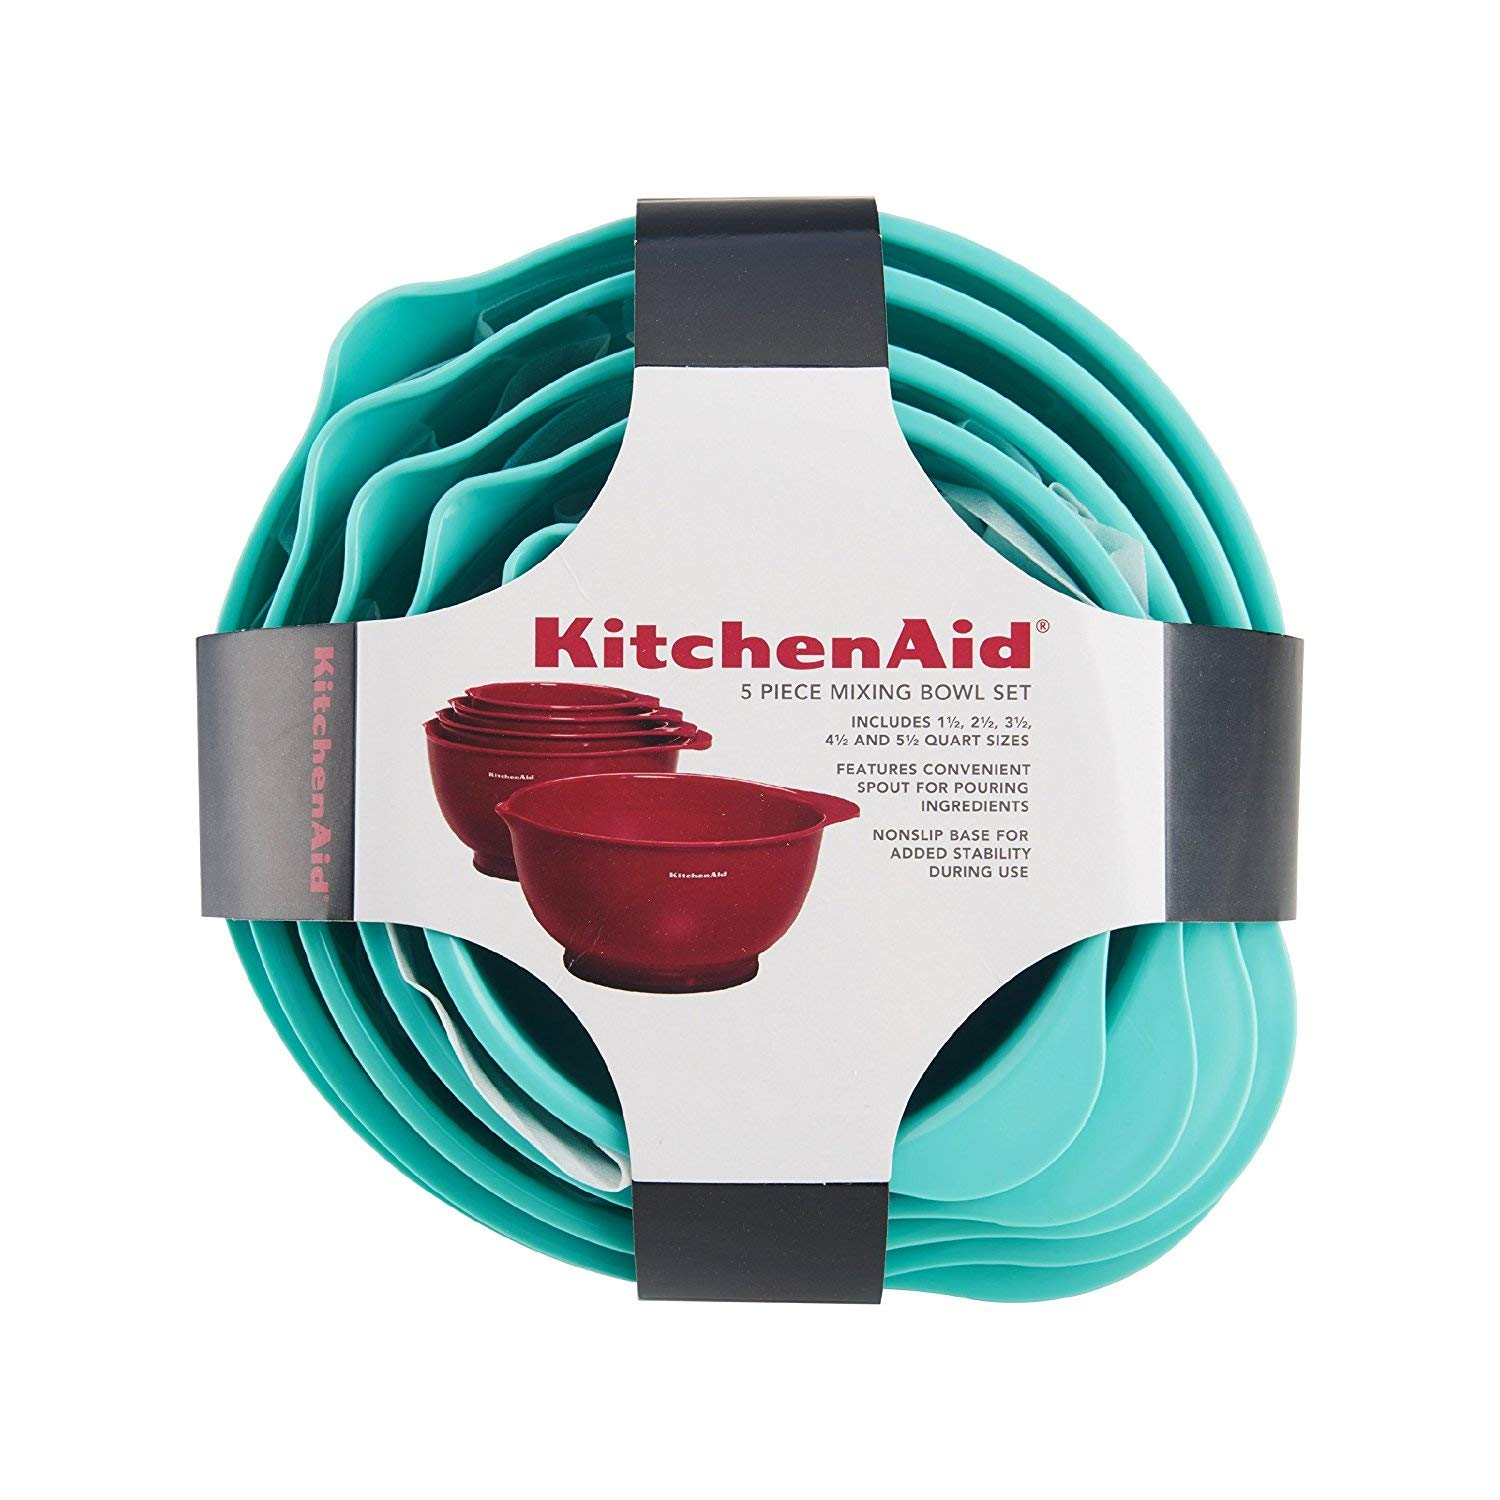 Amazon.com: KitchenAid Mixing Bowls, Set of 5, Aqua Sky: Kitchen ...